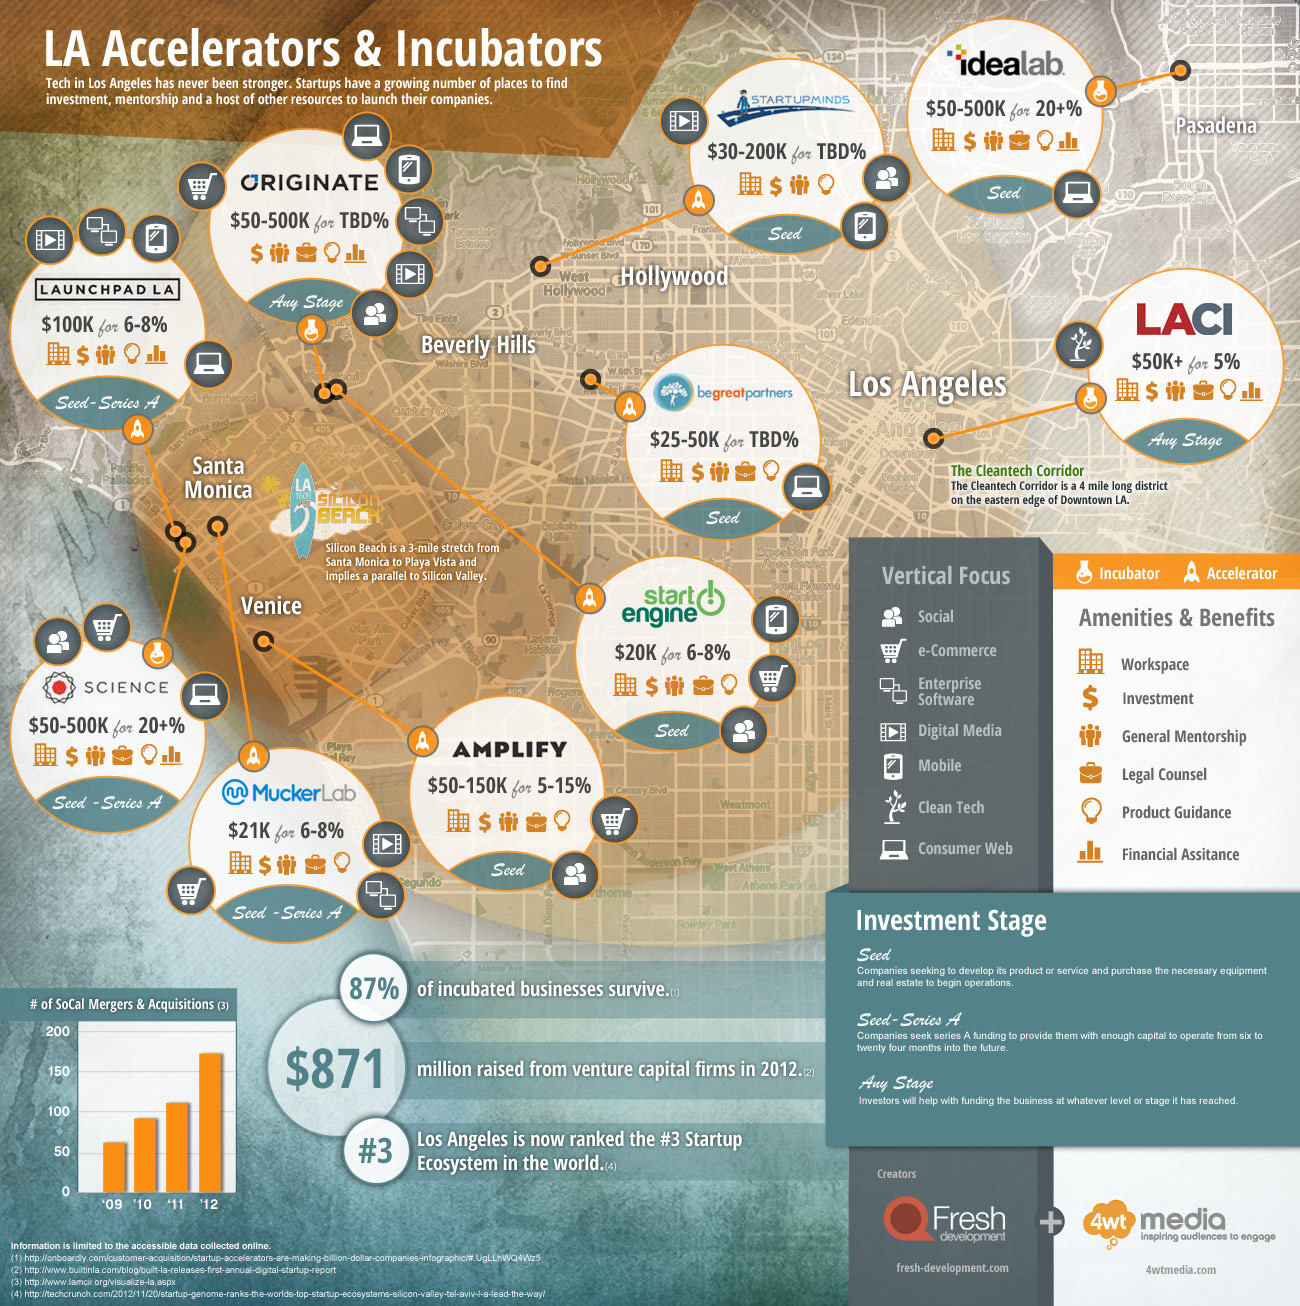 LA-Accelerators-and-Incubators.1